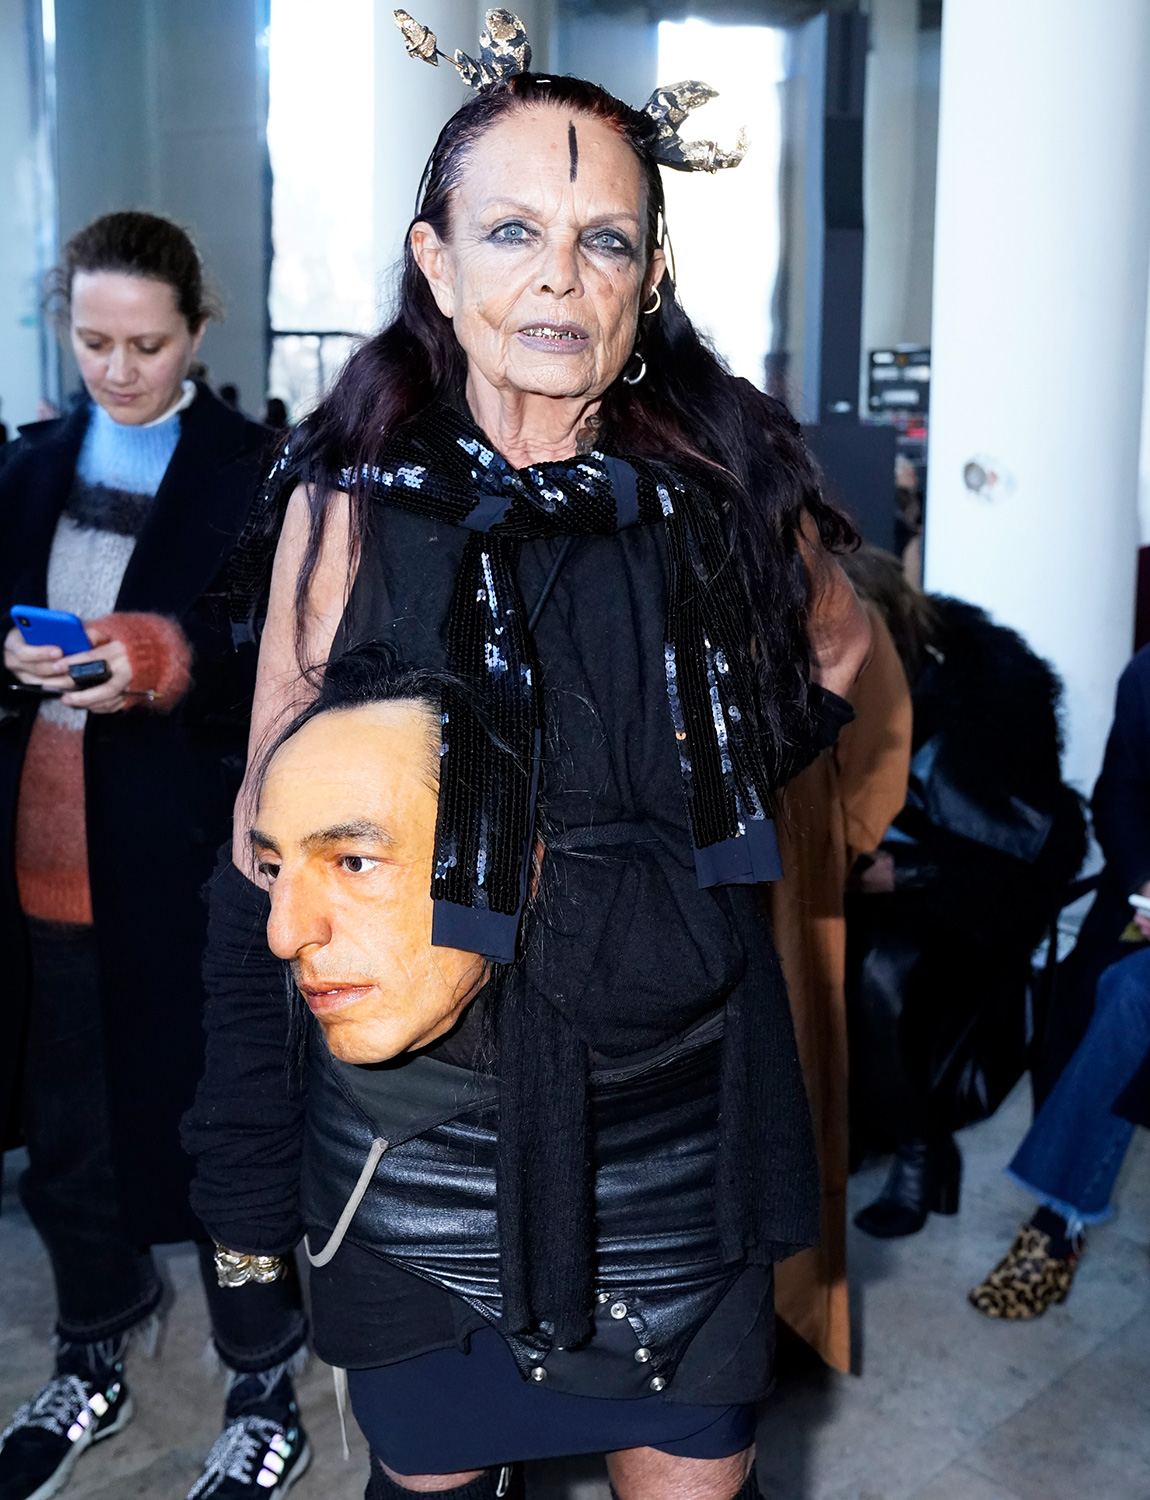 Michèle Lamy attends the Rick Owens show as part of the Paris Fashion Week Womenswear Fall/Winter 2020/2021 on February 27, 2020 in Paris, France